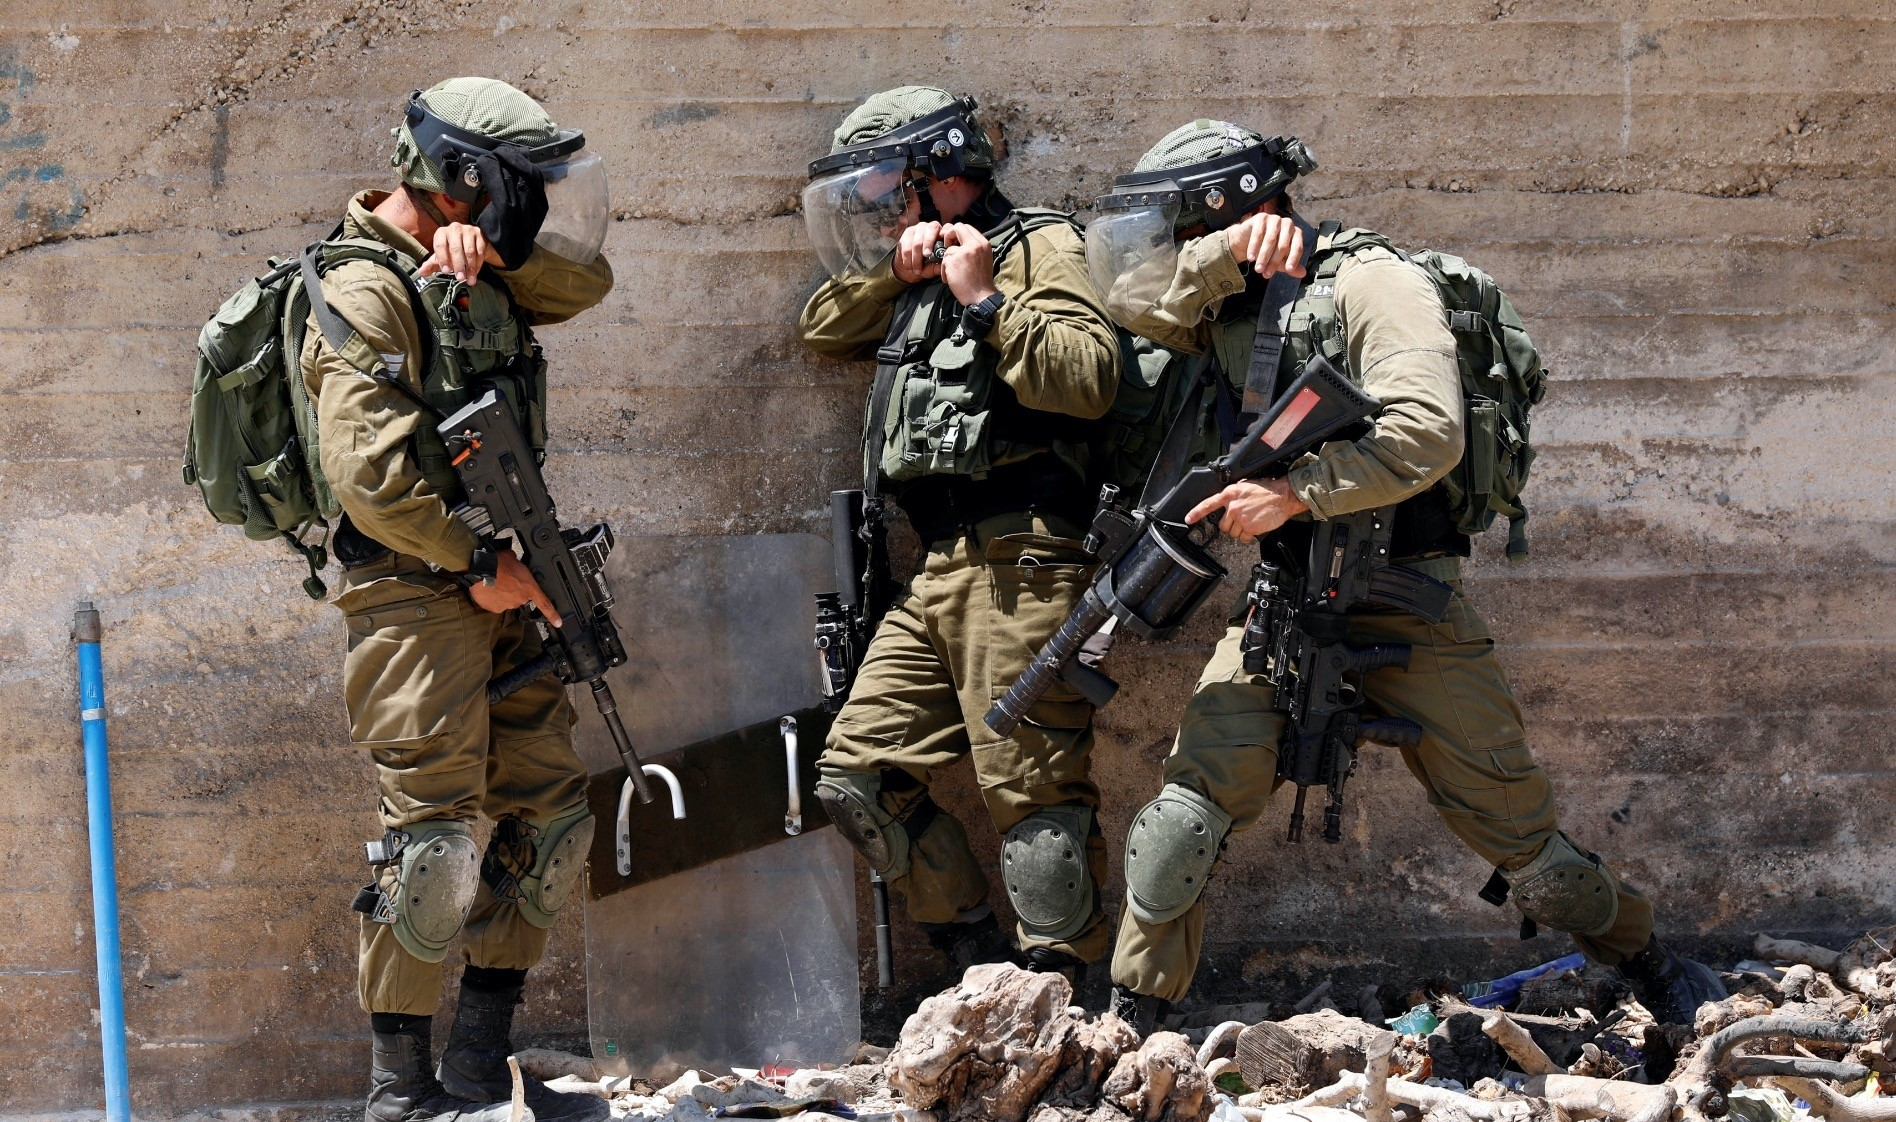 Israeli soldiers take cover during clashes with Palestinians in the occupied West Bank, Aug. 17.